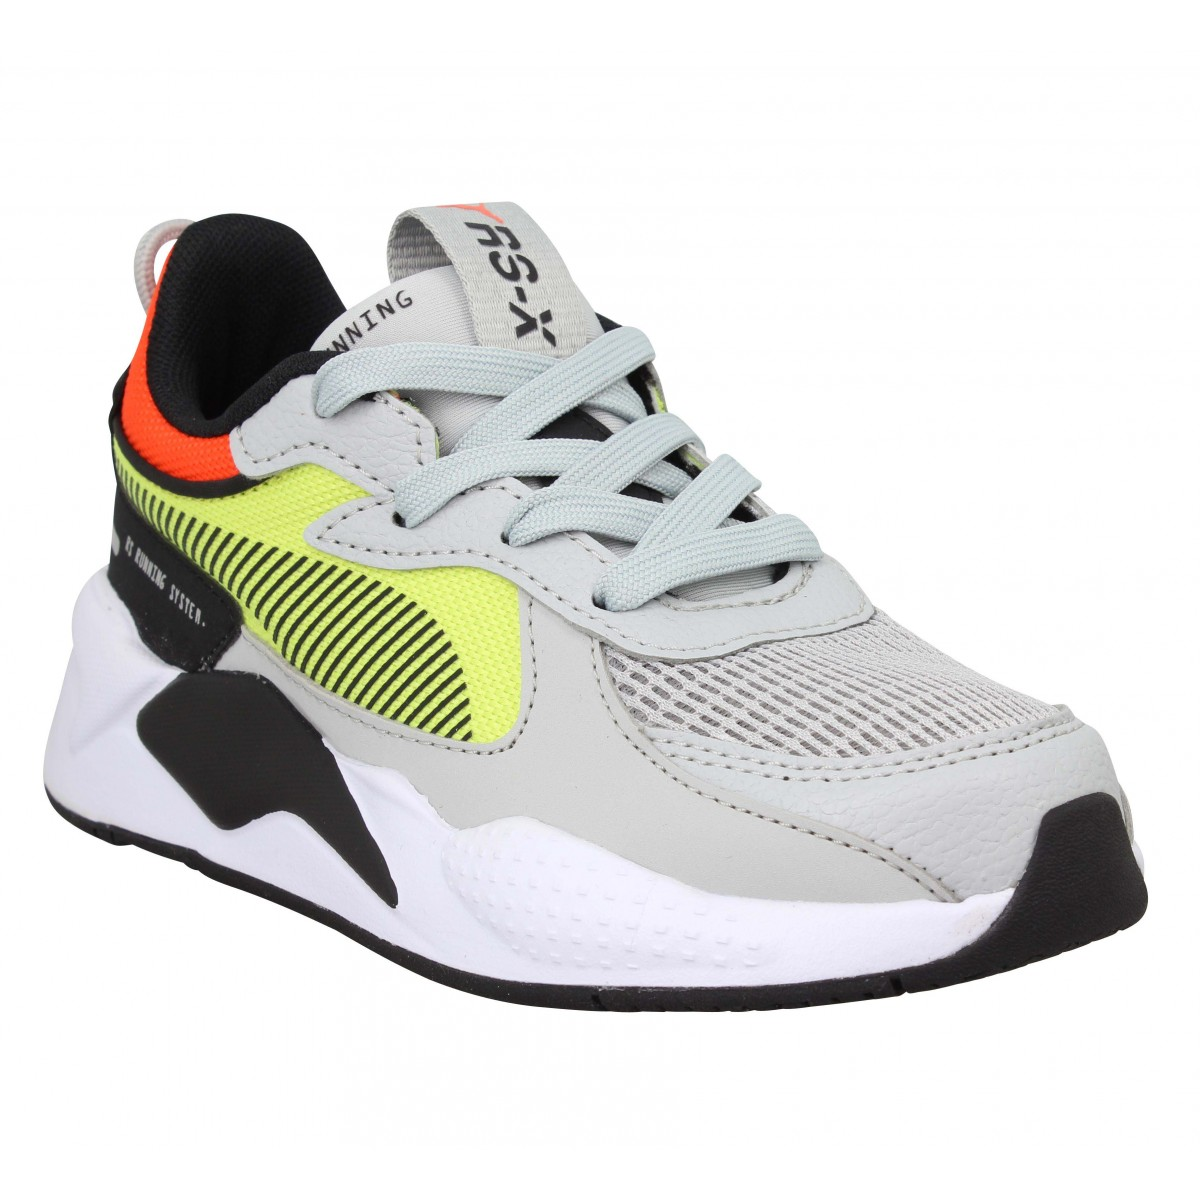 Baskets PUMA RS-X Hard Drive toile Enfant Gris